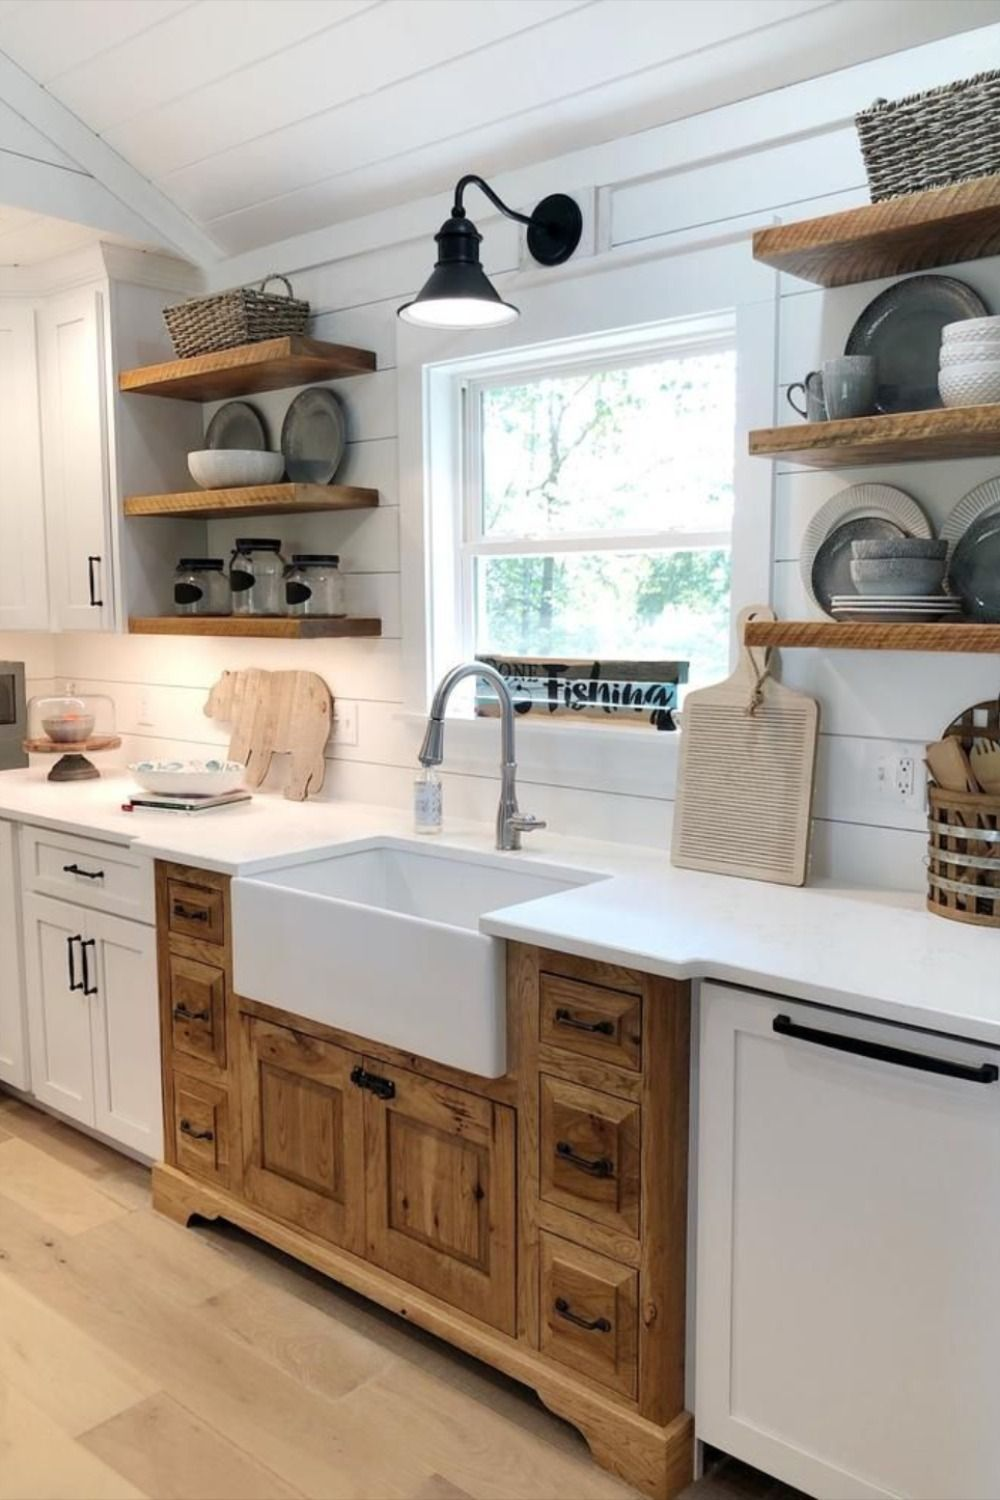 20 Catchy Galley Kitchen Remodel Ideas 2020 Tips Trends In 2021 Farmhouse Style Kitchen Kitchen Style Galley Kitchen Remodel